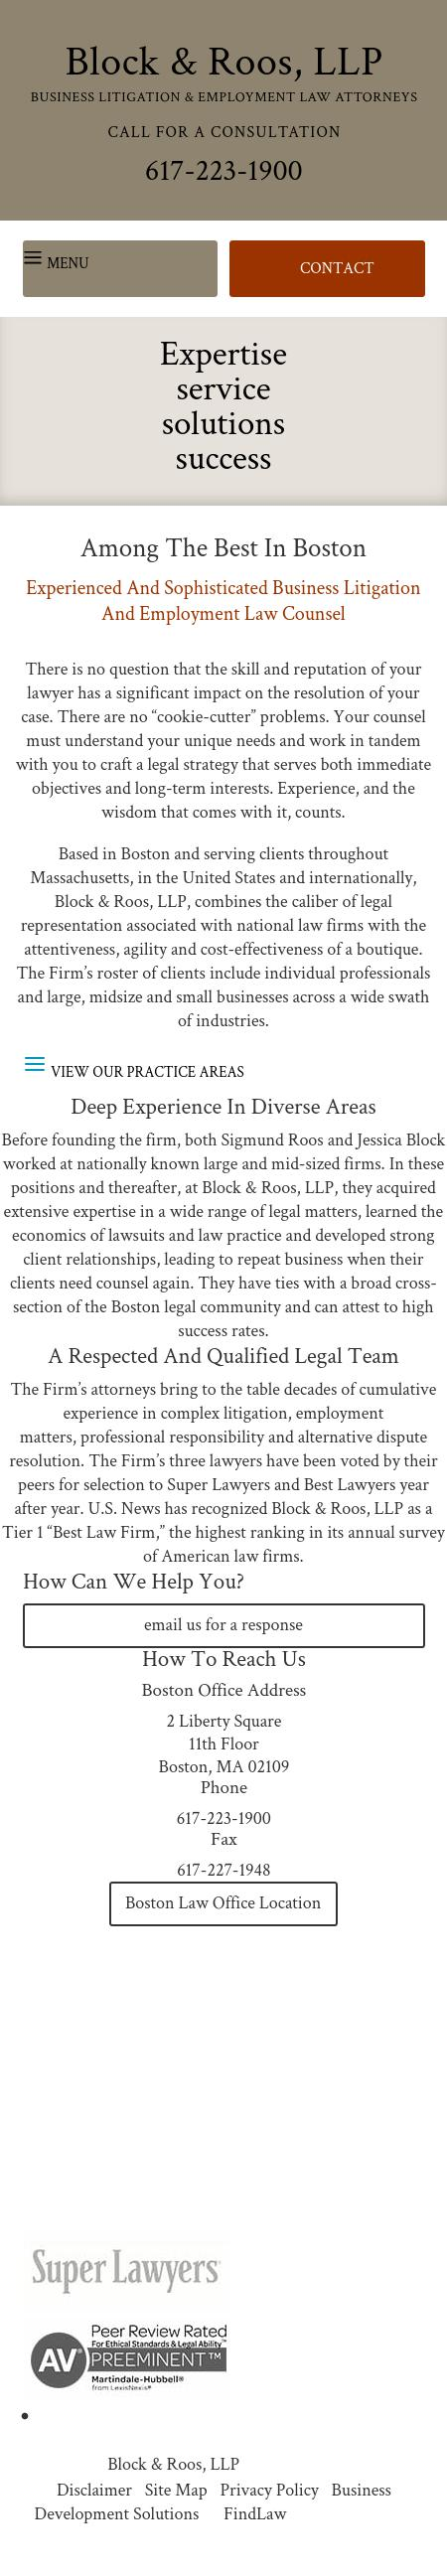 Block & Roos, LLP - Boston MA Lawyers